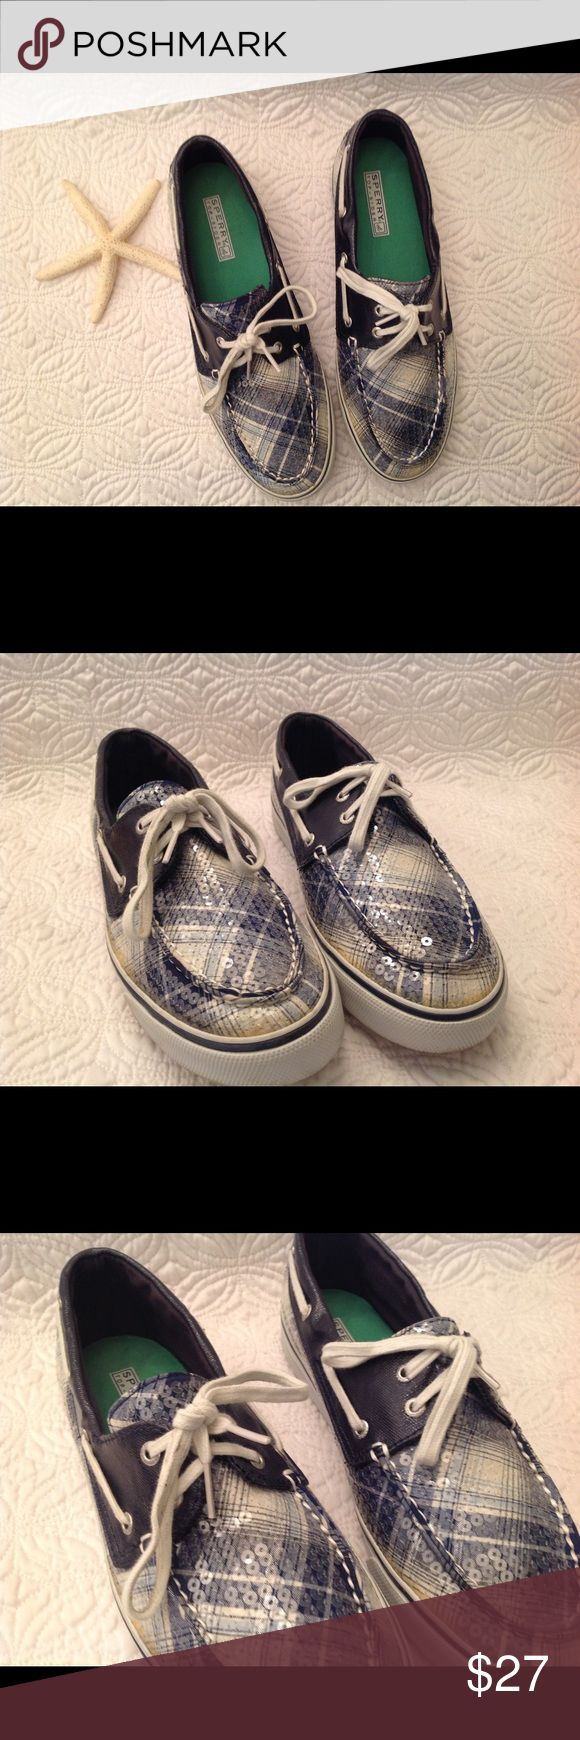 Sperry Top Sider Sequined Blue Plaid Boat Shoes Gently loved. Very clean. Smoke free environment. Sperry Top-Sider Shoes Athletic Shoes